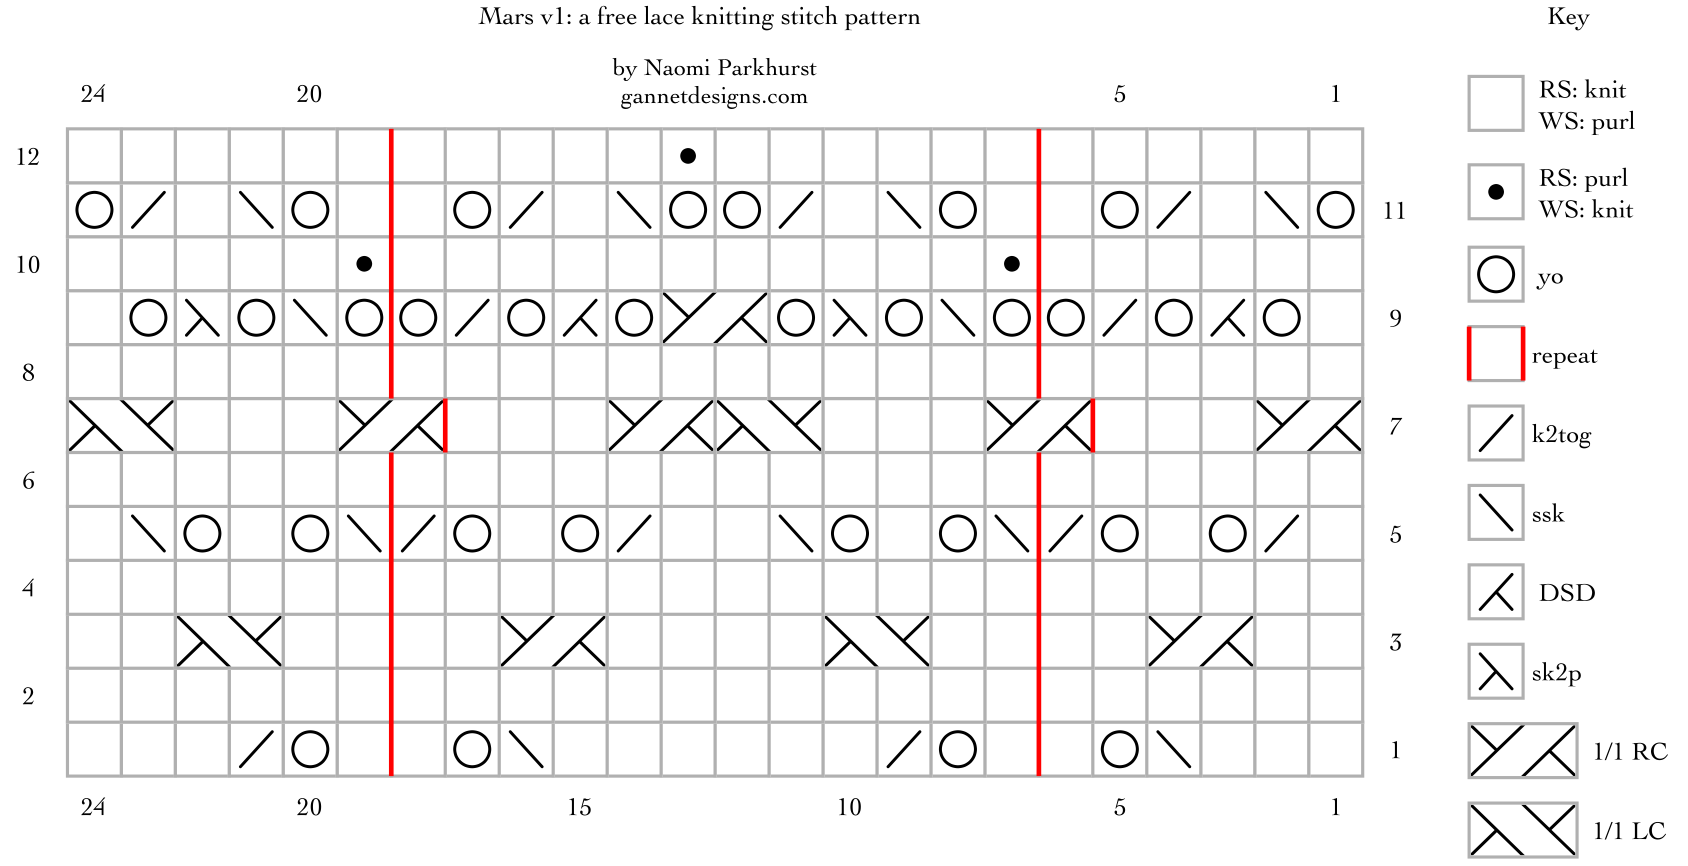 Mars version 1: a free lace knitting stitch pattern chart by Naomi Parkhurst